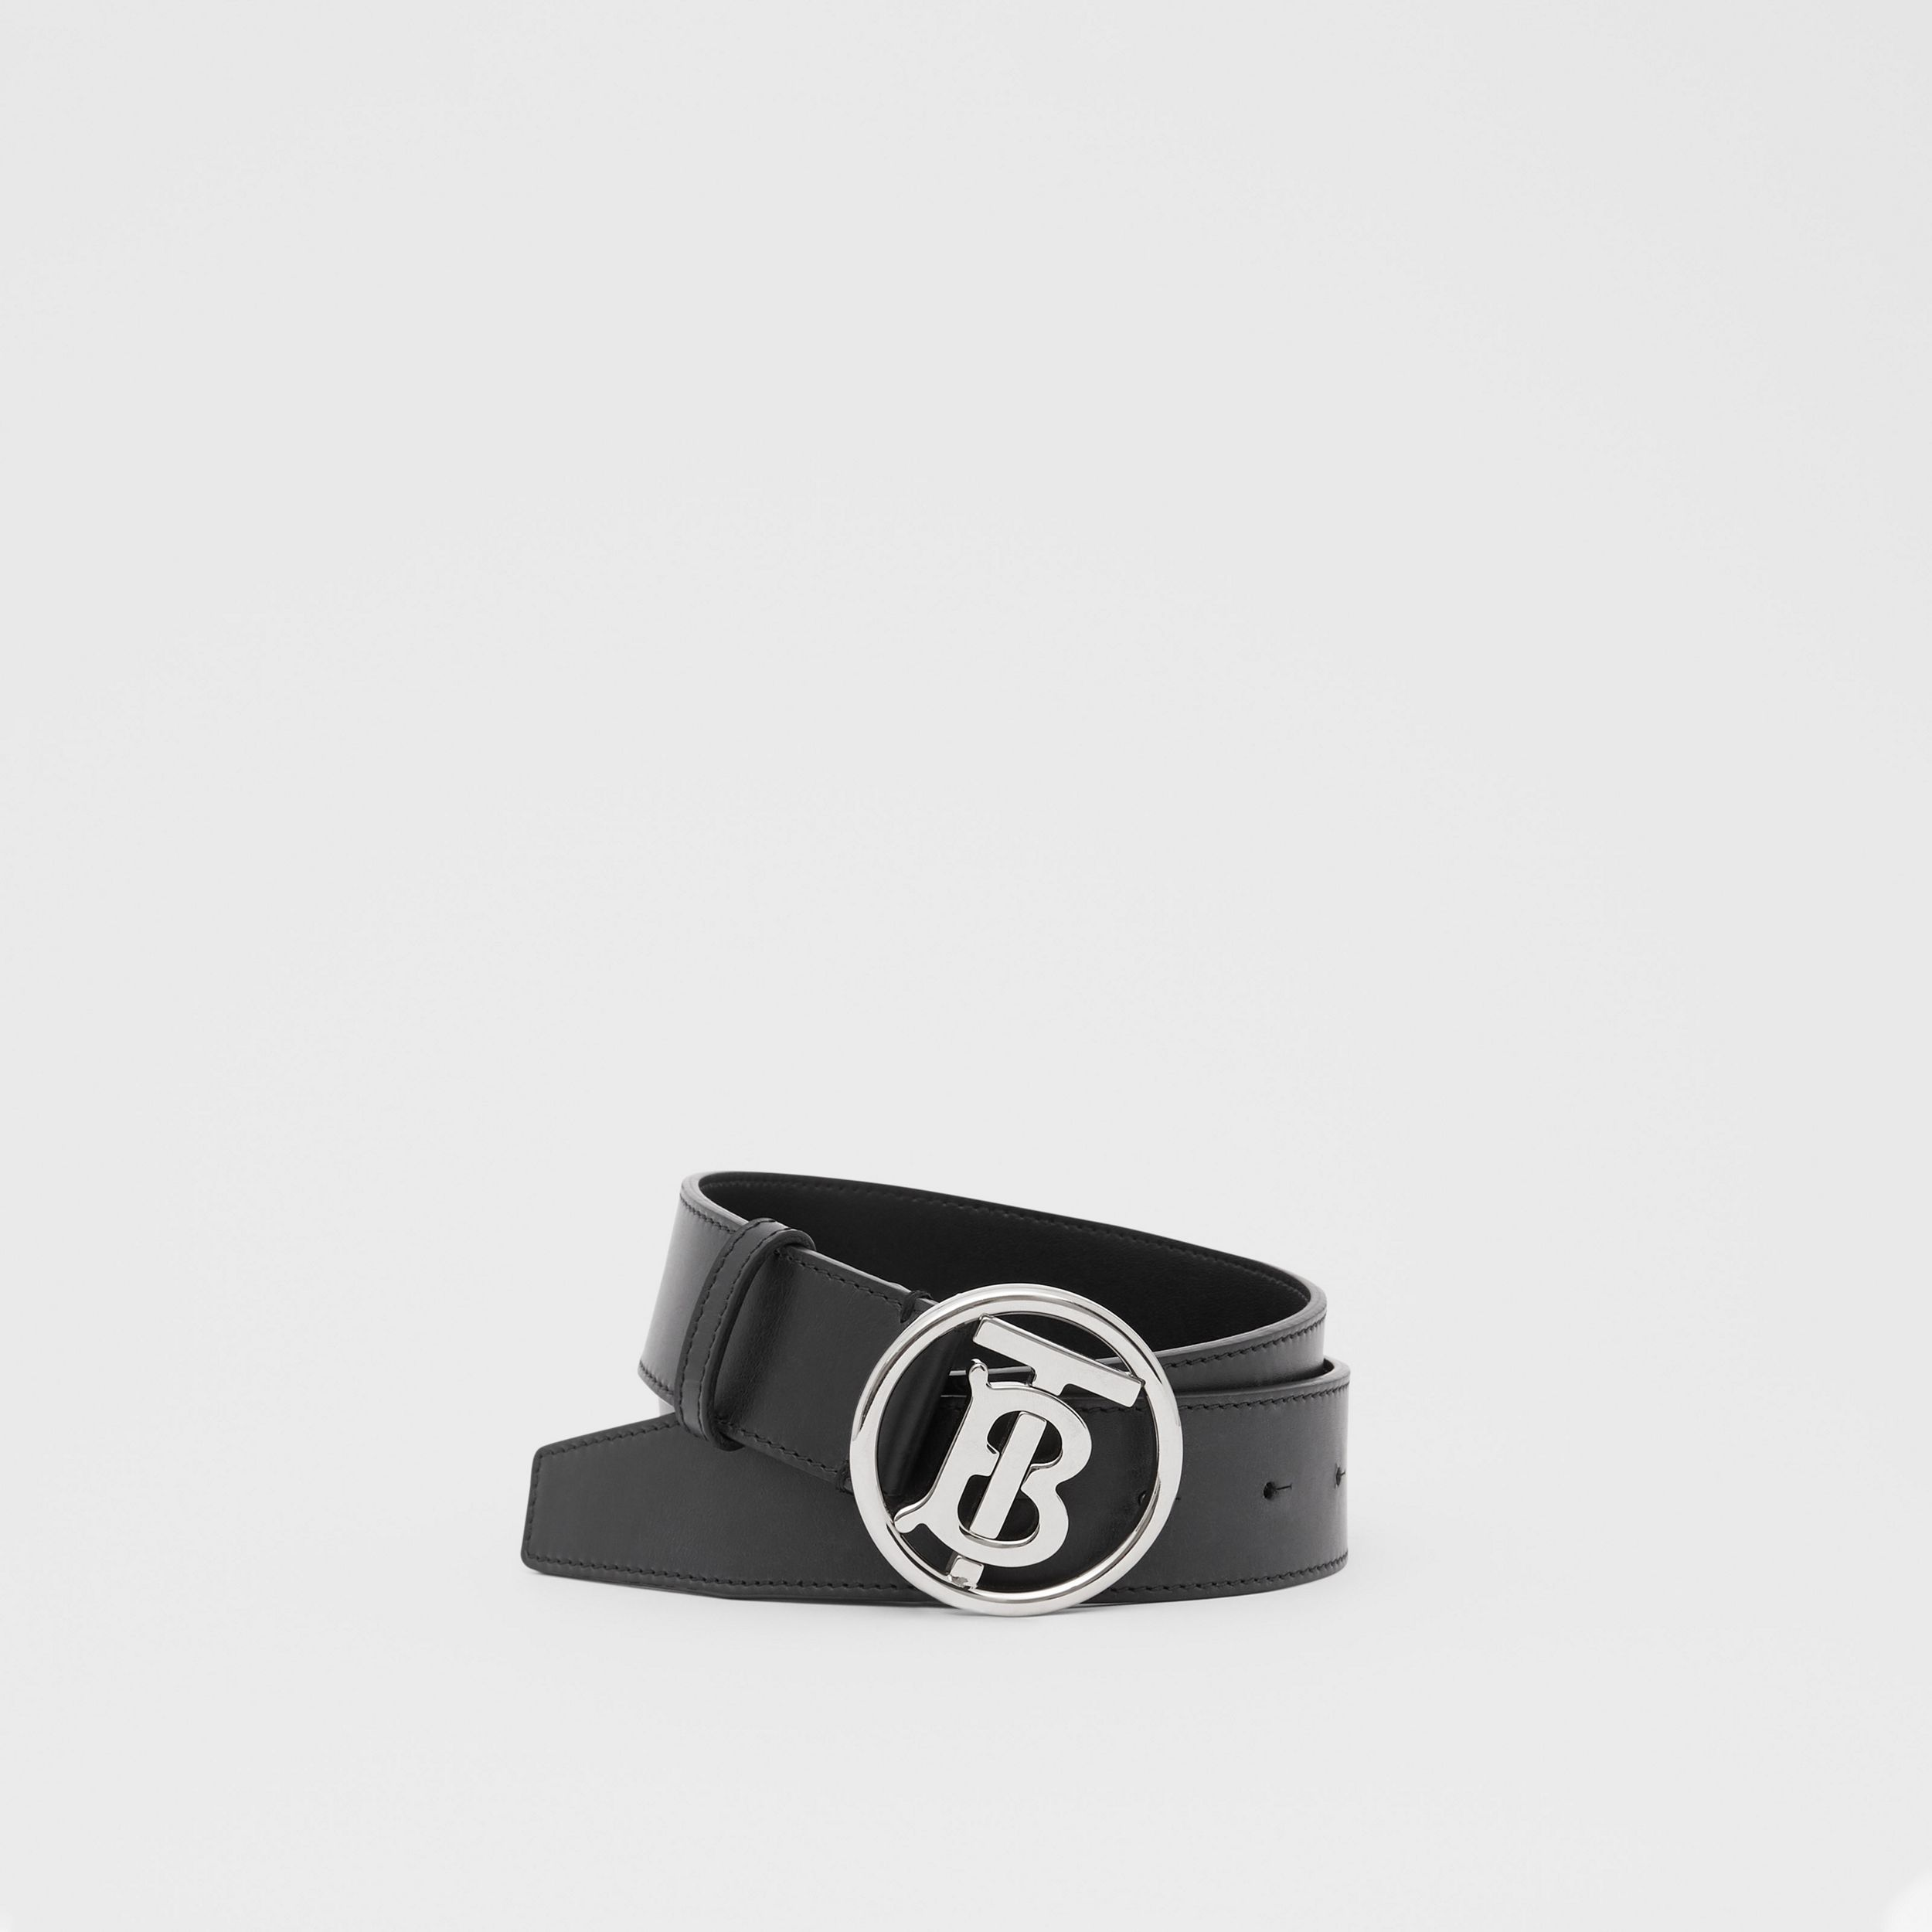 Monogram Motif Leather Belt in Black - Men | Burberry - 1